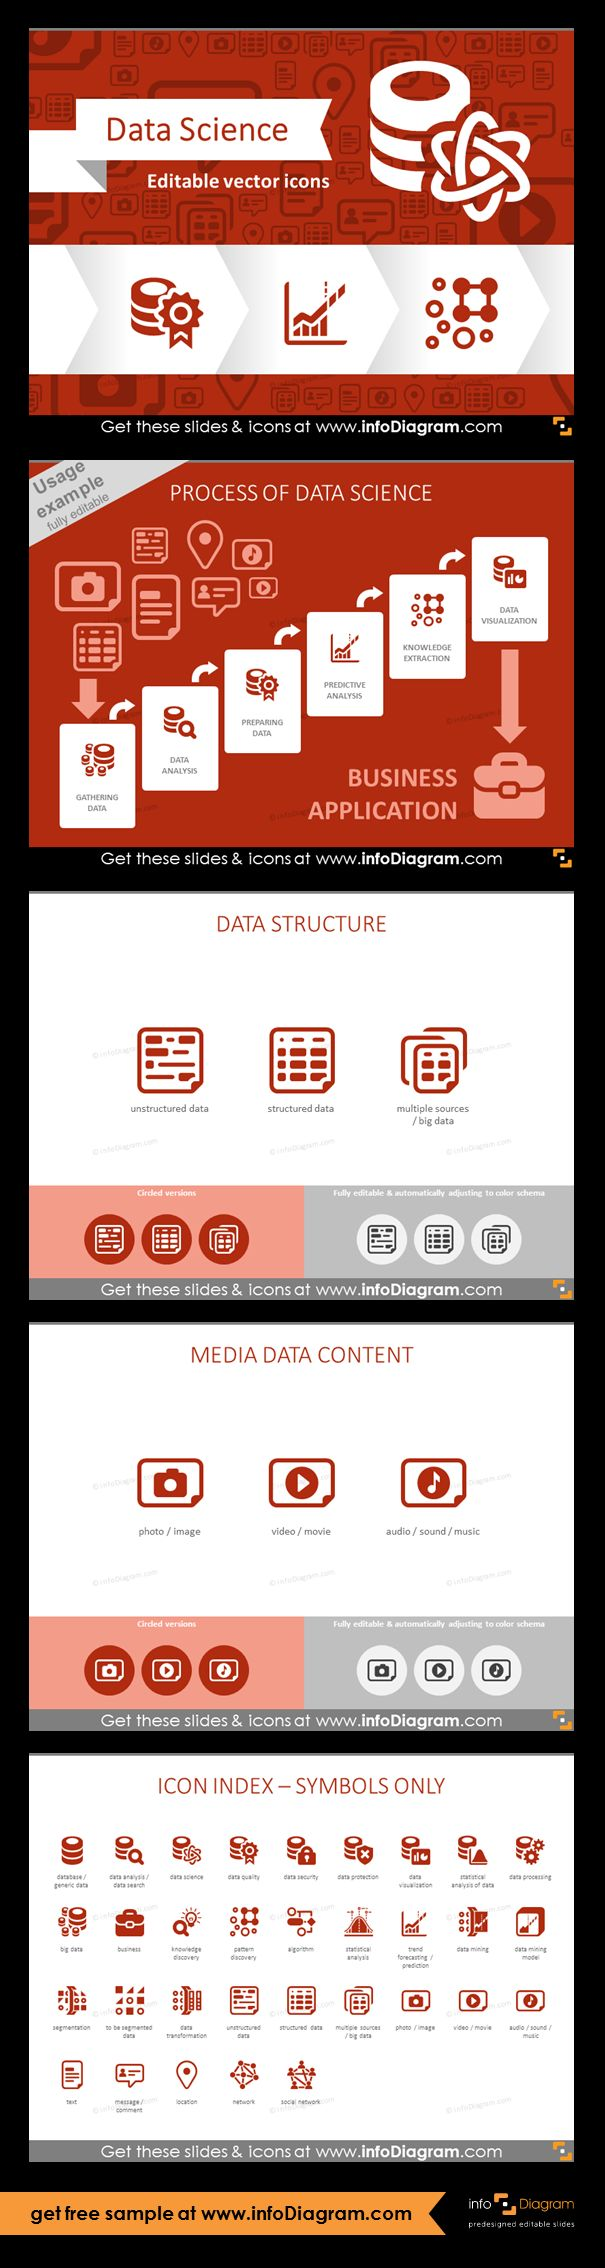 Data Science graphics. Data structure: structured and unstructured data. Media Data content: photo, video and audio icons. Data Science process - from gathering data and data analysis to data visualization and business application.